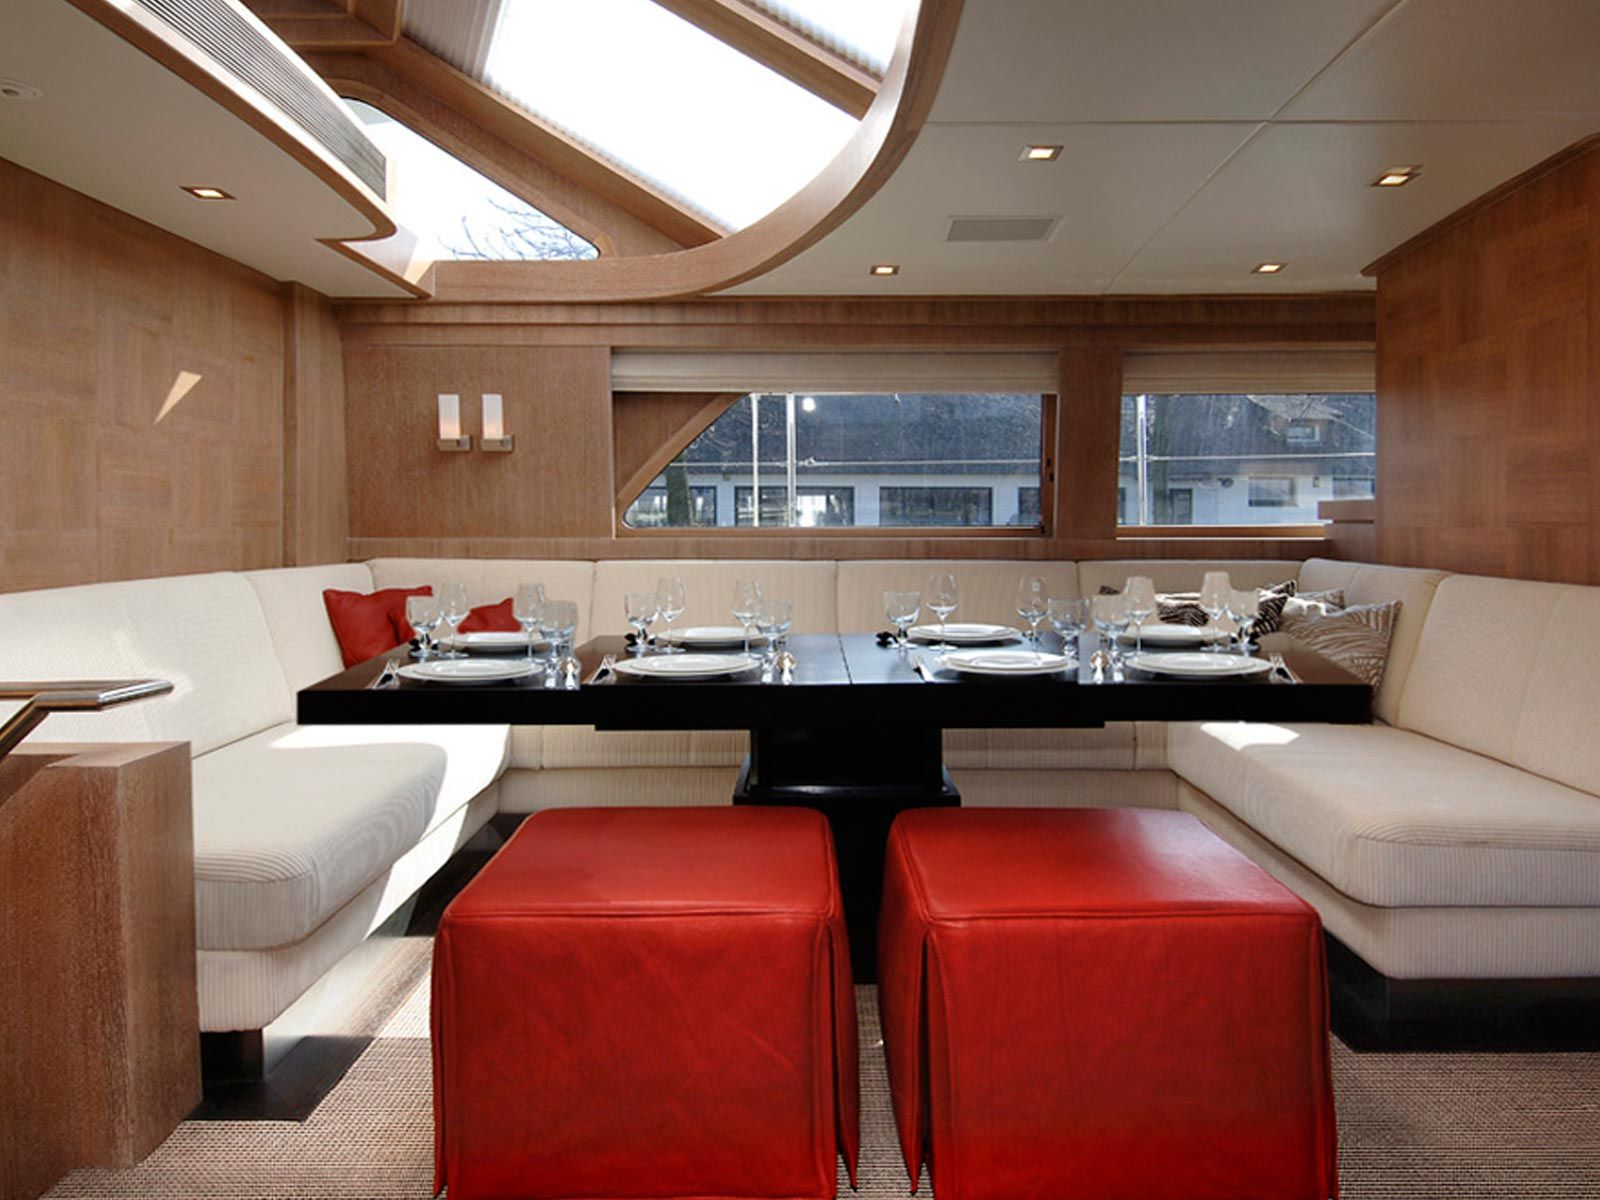 Interiors Of Luxury Yachts  Yacht  Interior  Mulder 73 Stunning Red And Black Living Room Decorating Ideas Inspiration